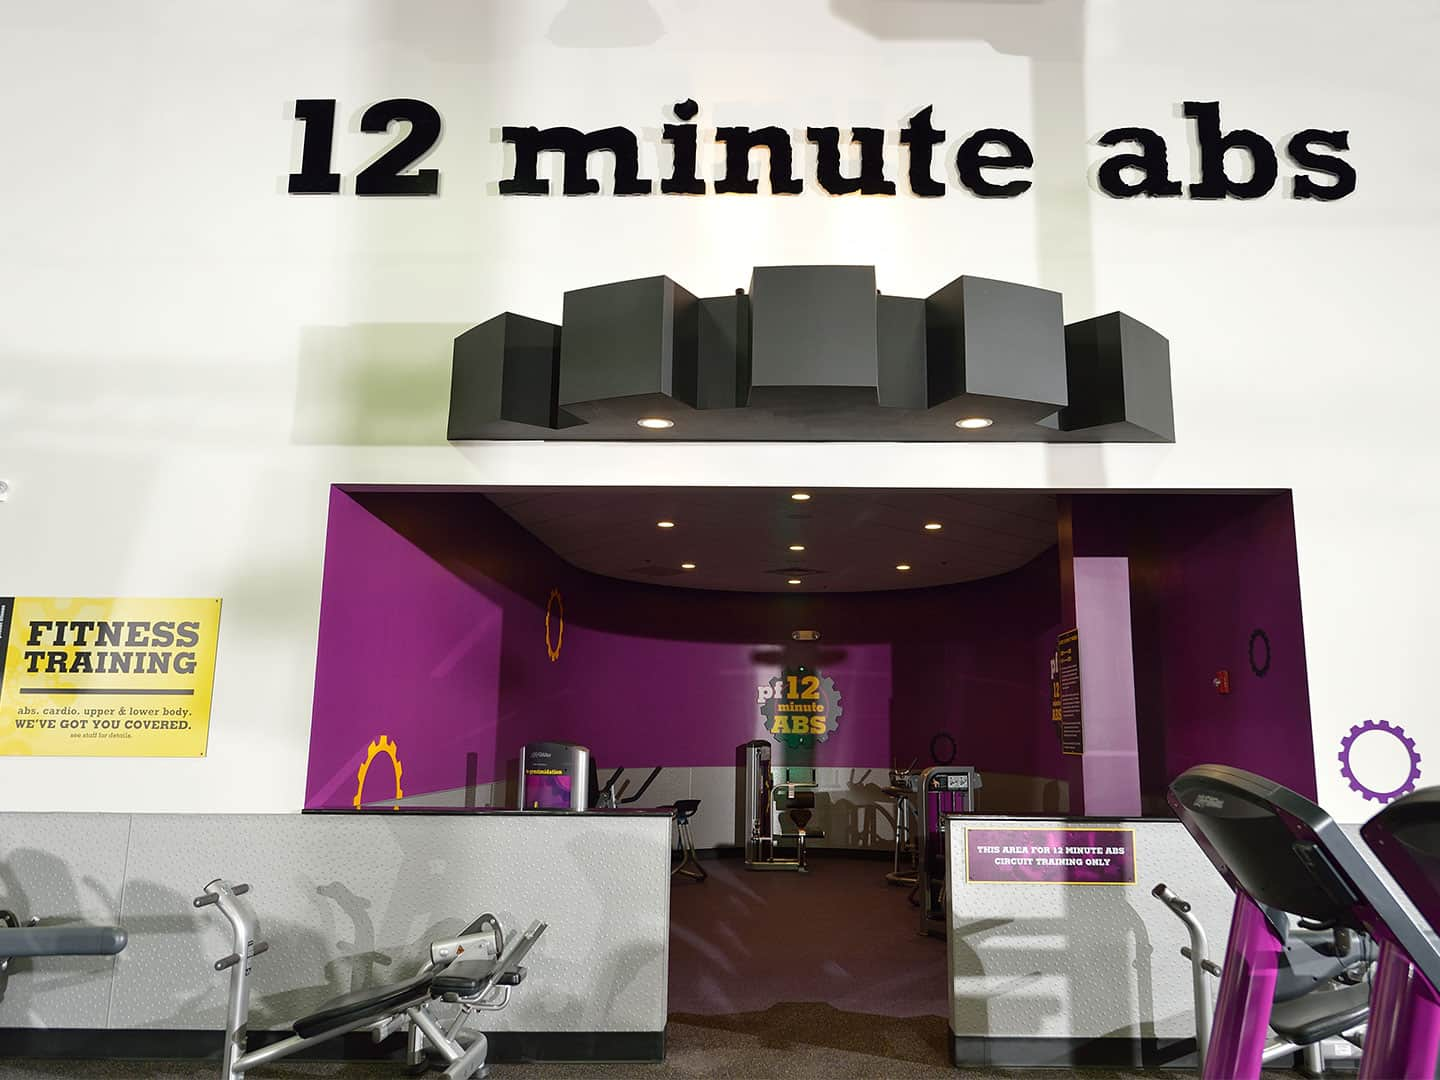 Planet Fitness - cut letters and interior signage